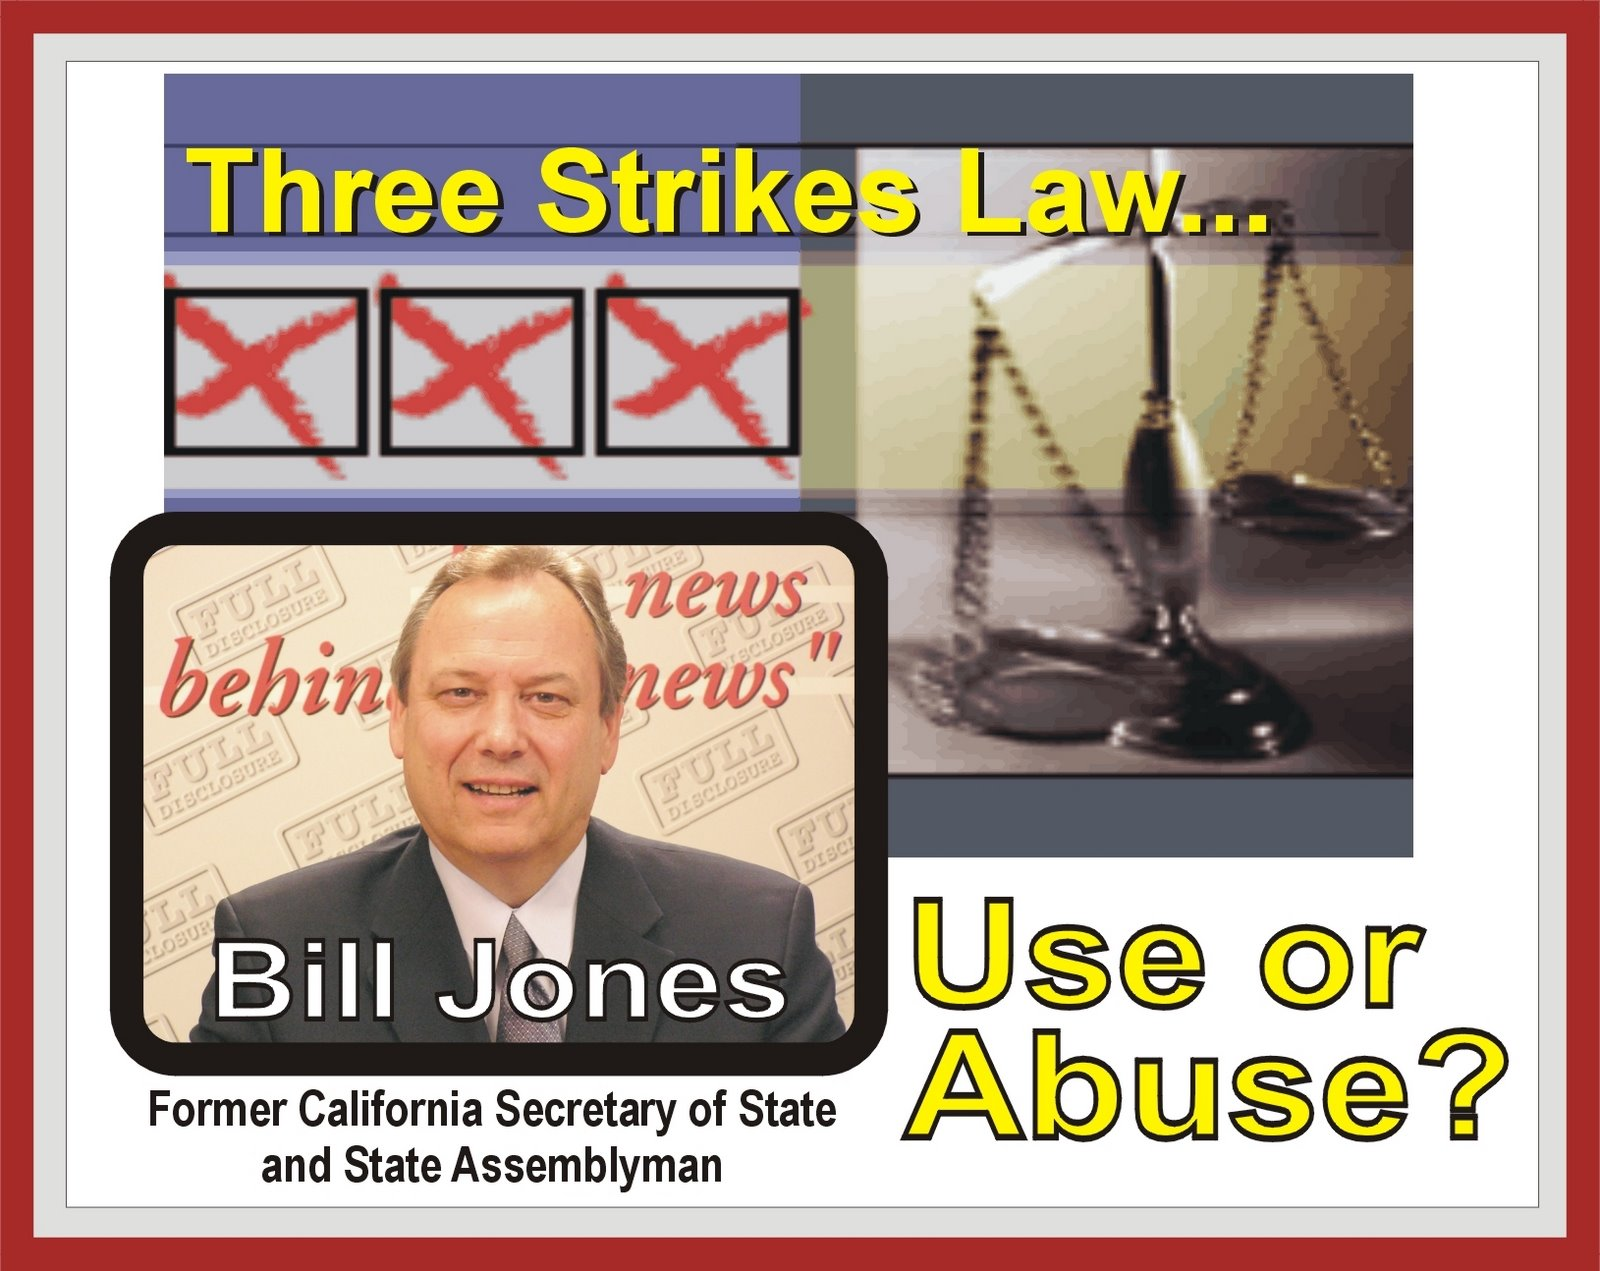 an analysis of the three strikes law in california 10 reasons to oppose 3 strikes law enforcement professionals oppose the 3 strikes law out of fear such laws would spur a three strikes laws will make a.